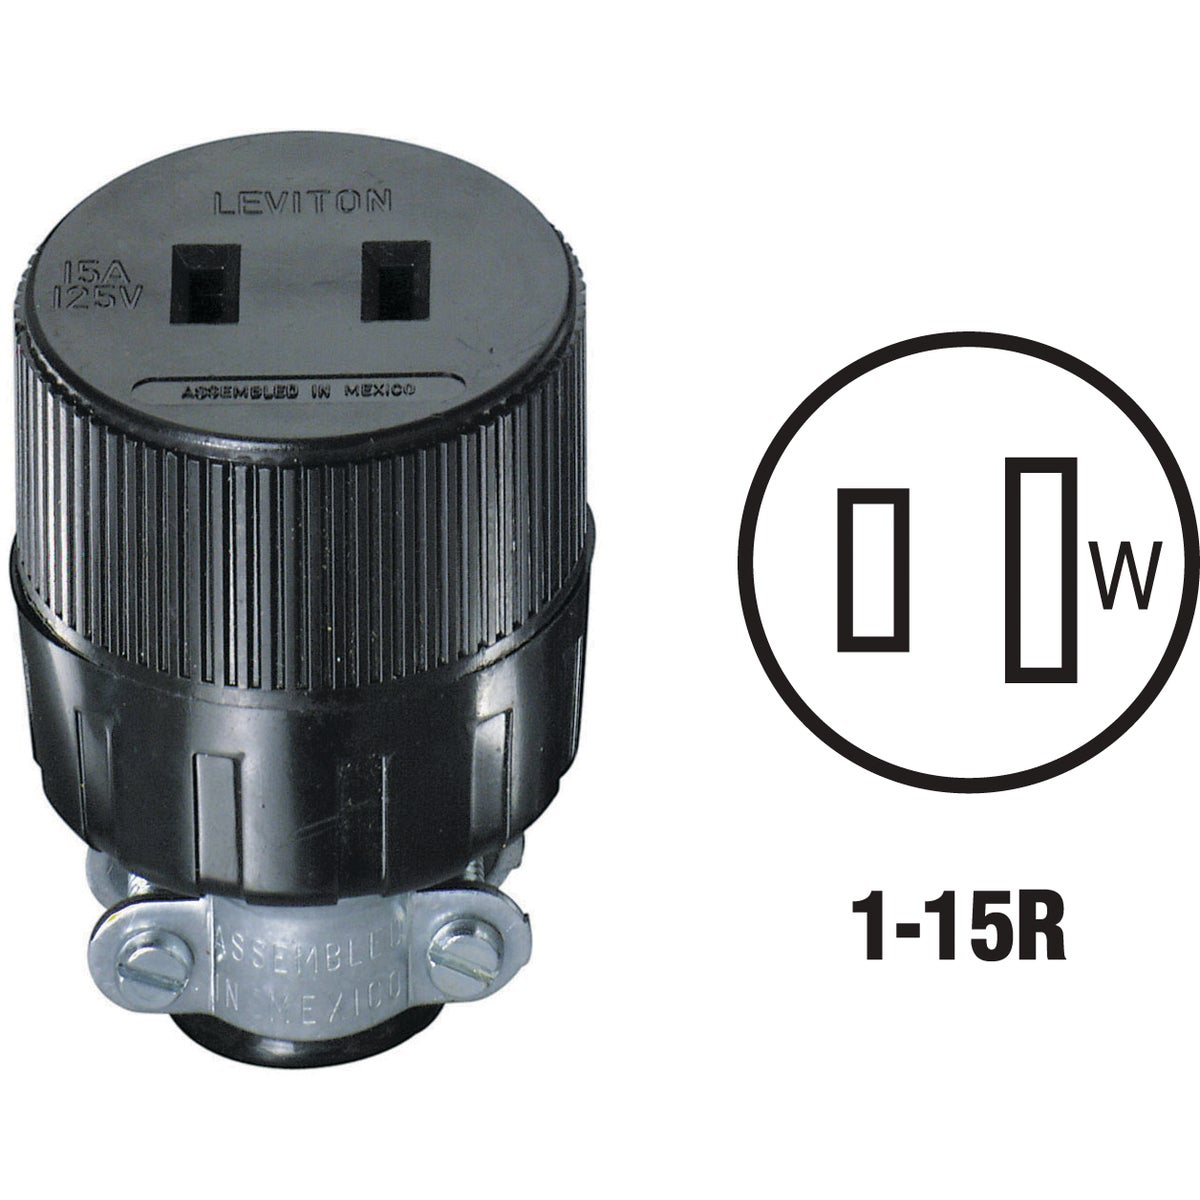 BLK CORD CONNECTOR - 612 by Leviton Mfg Co